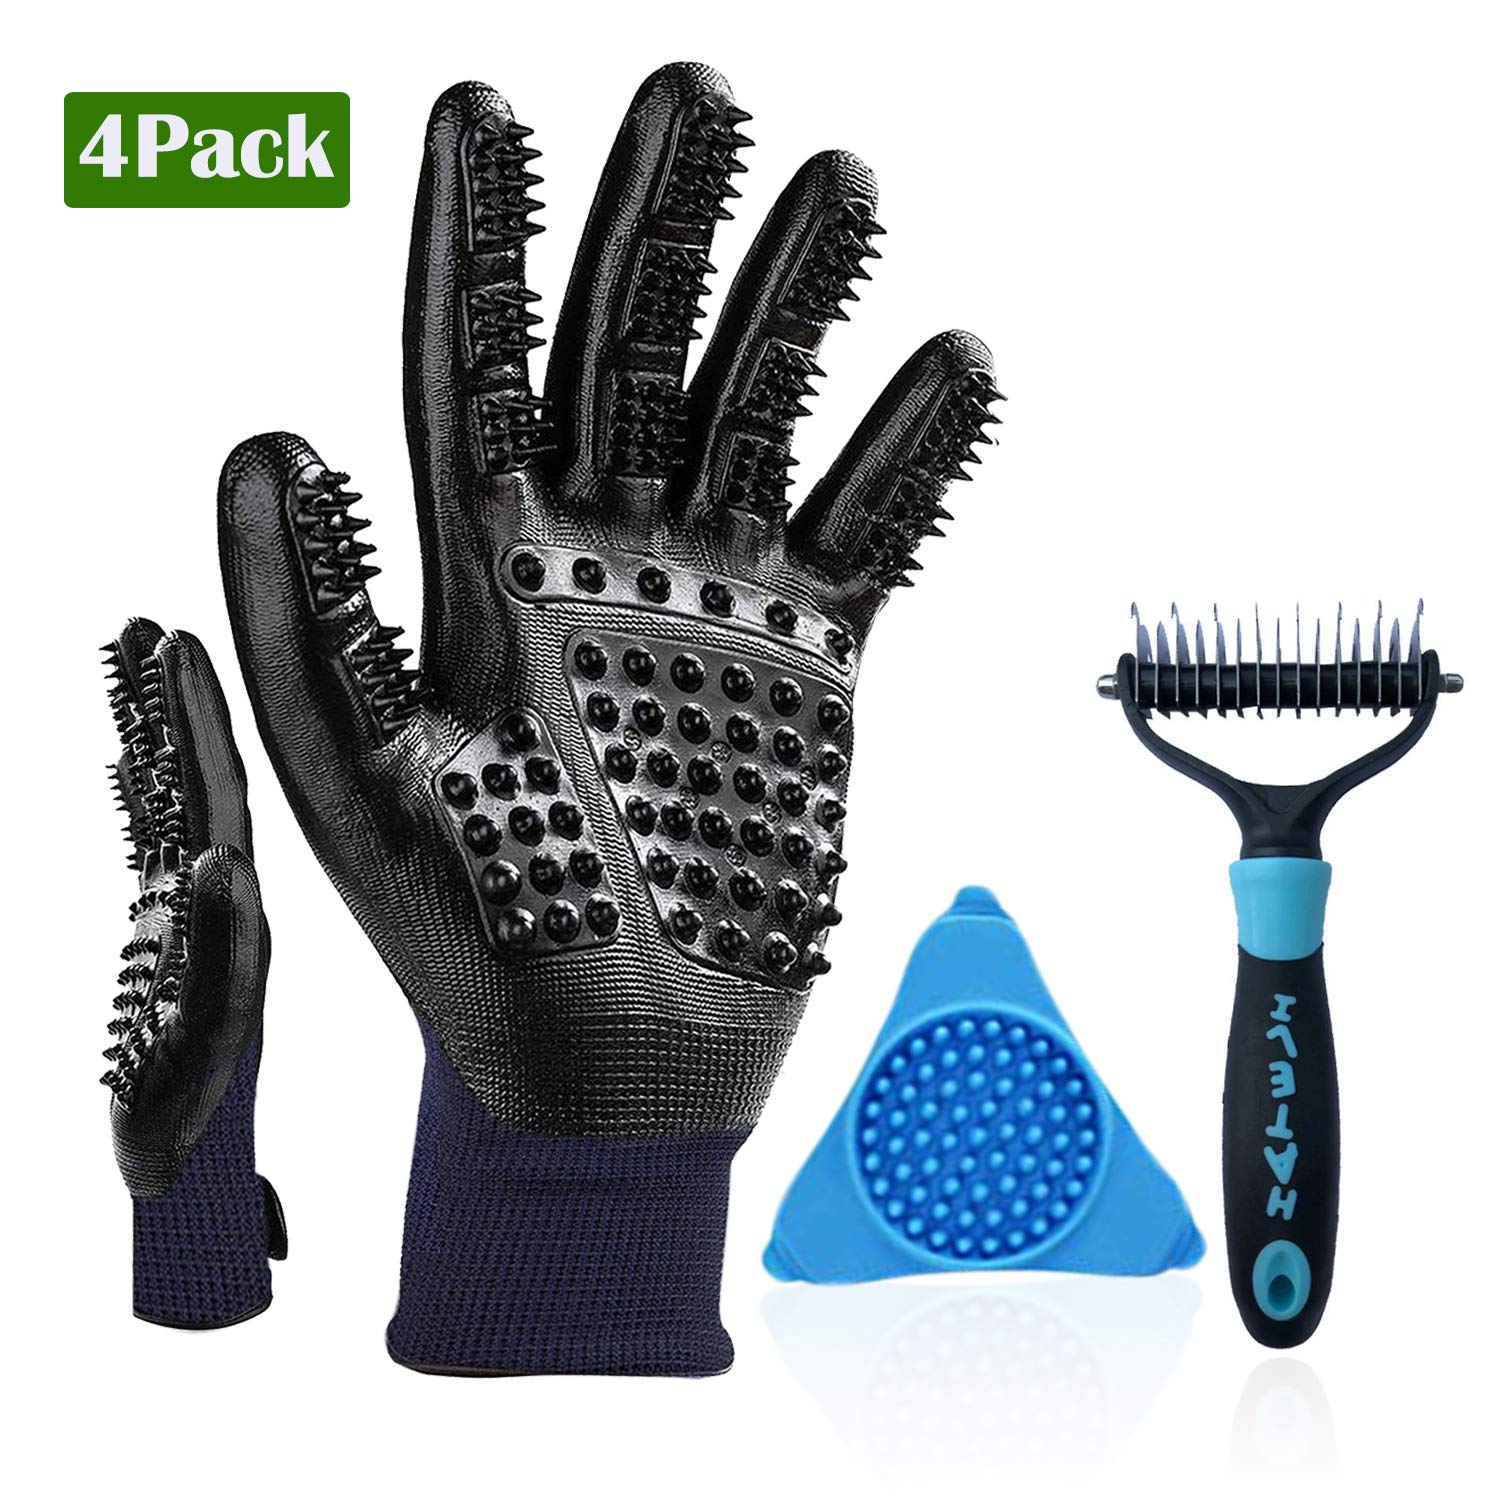 HBPET Pet Grooming Tool Bath-Pet Deshedding Grooming Gloves & Dog Bowl Slow Feeder Lick Wall Mount & Dematting Comb 2 Sided Included Dogs Cats